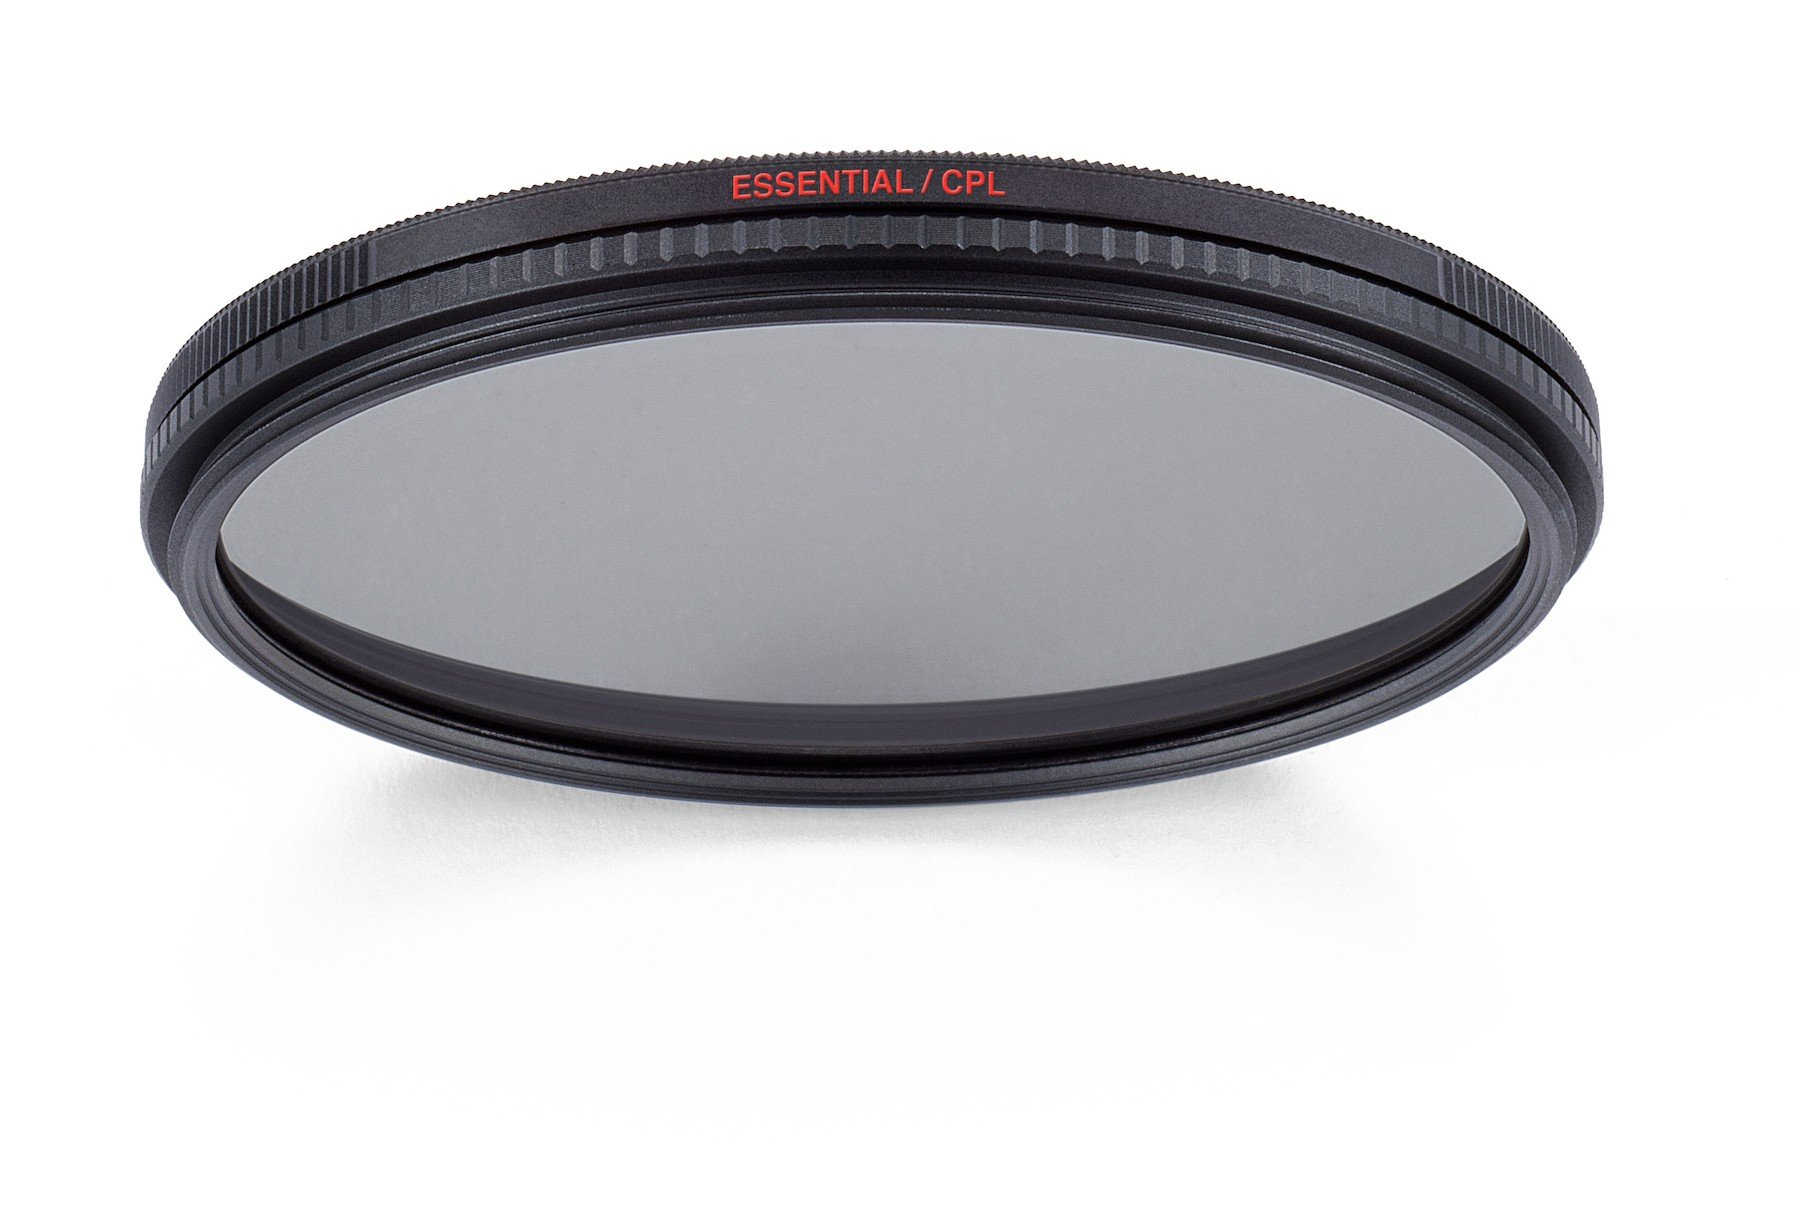 77mm Essential Circular Polarizing Filter